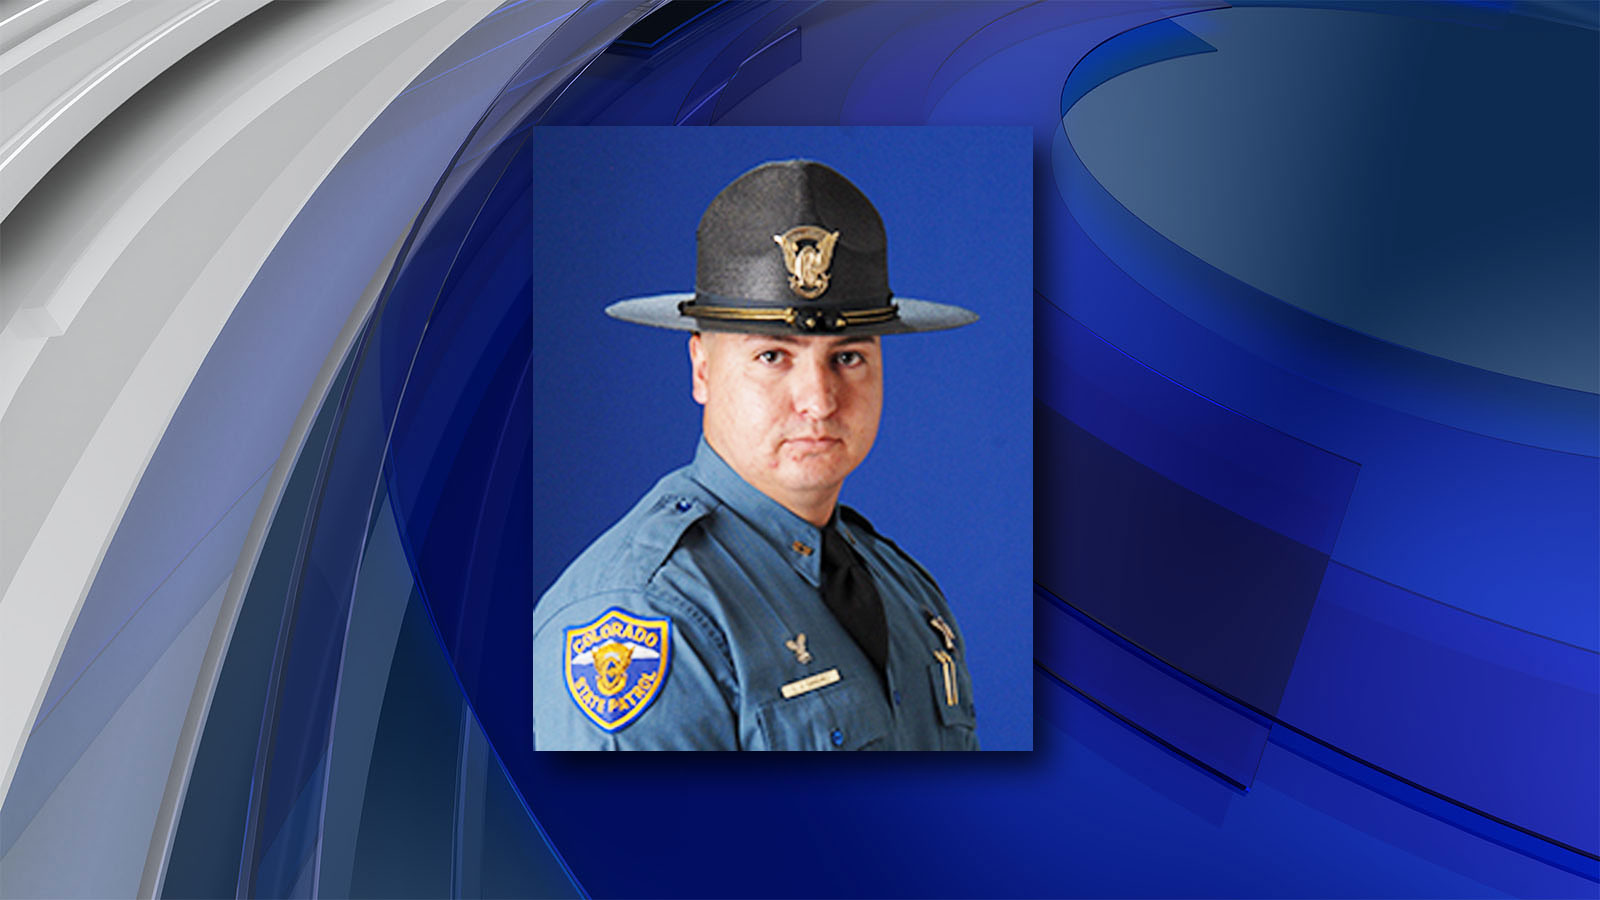 Trooper Lance Sanchez (credit: Colorado State Patrol)